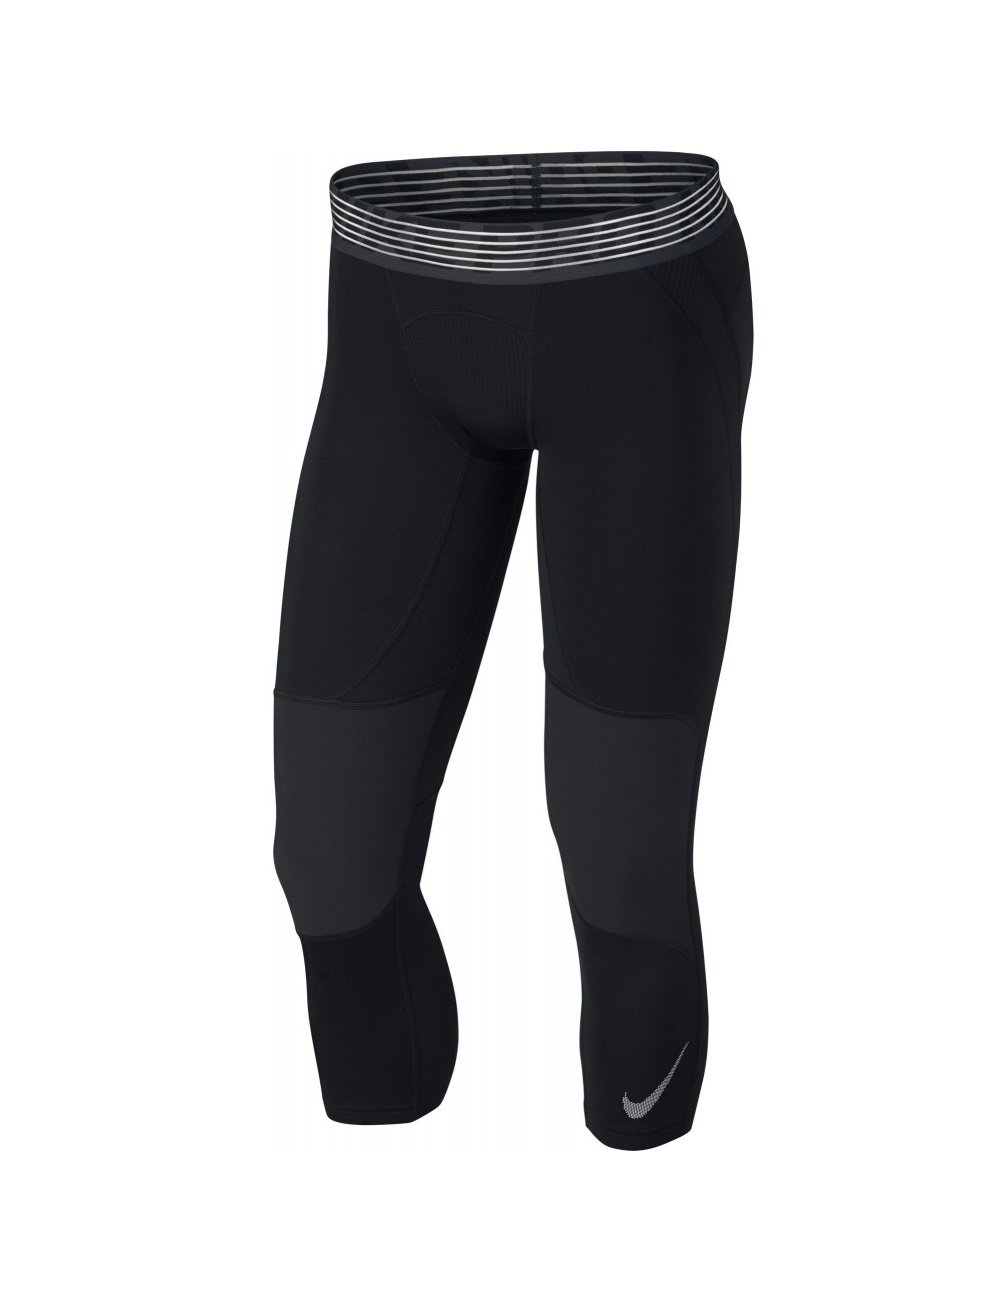 Nike Men's Pro 3/4 Tights (Midnigt/Black/Electric Silver, Large) by Nike